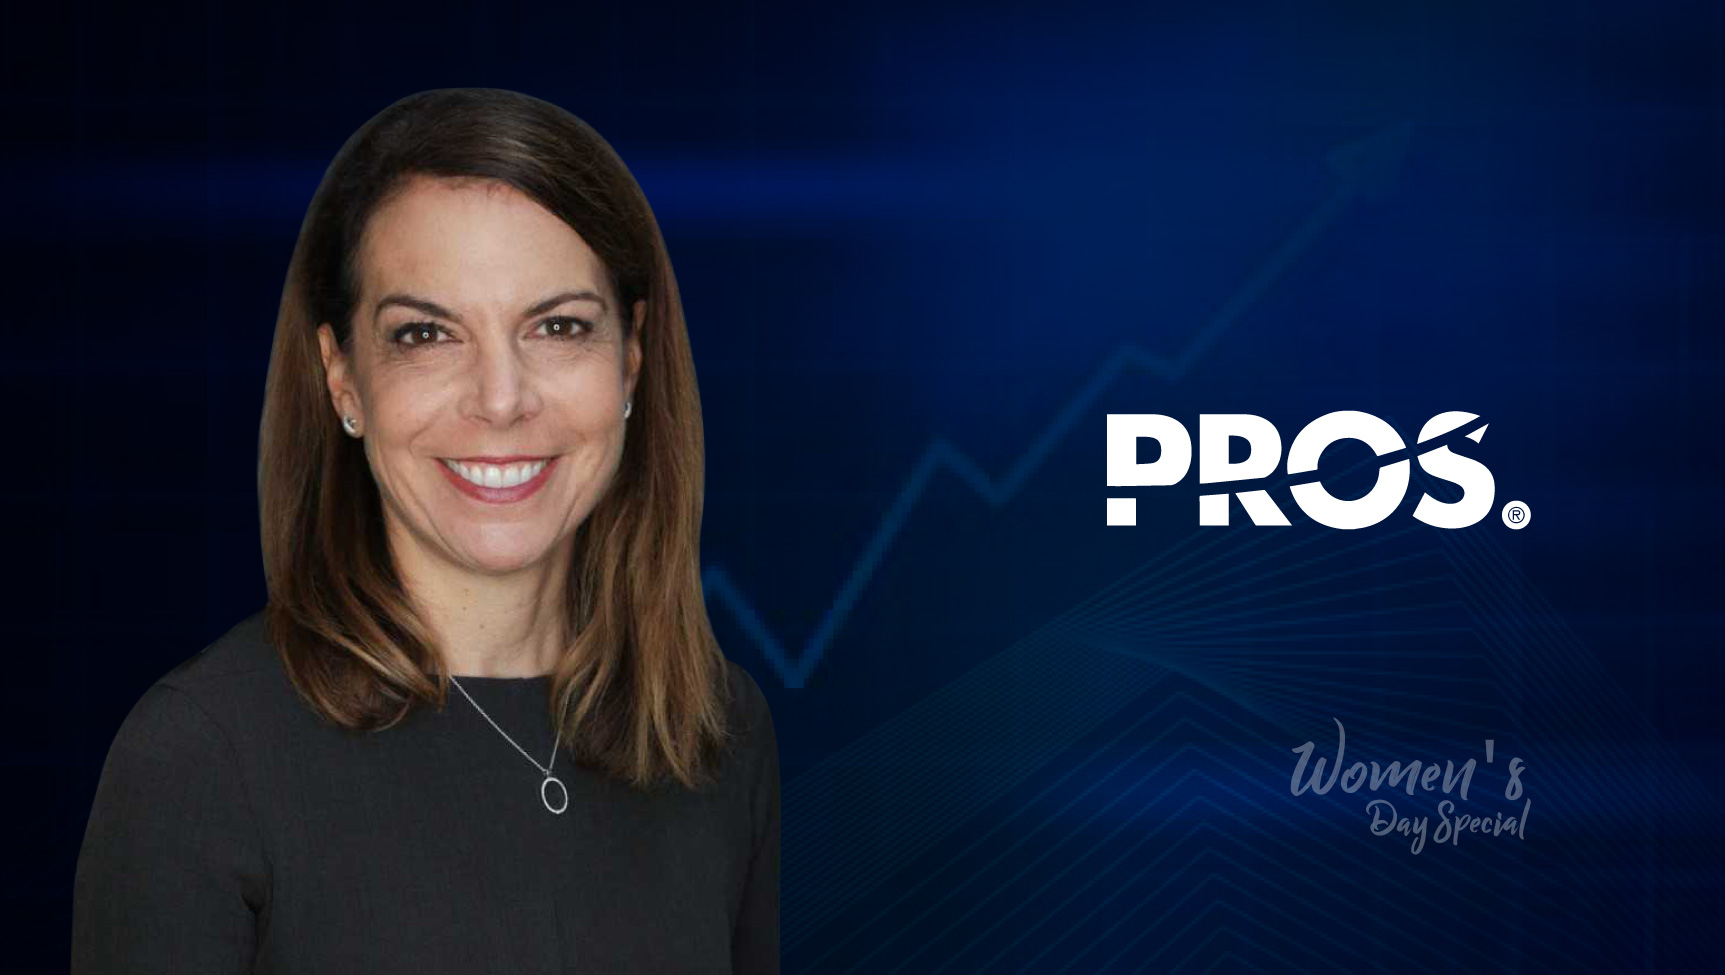 SalesTech Interview With Jill Sawatzky, Vice President - Customer Success at PROS